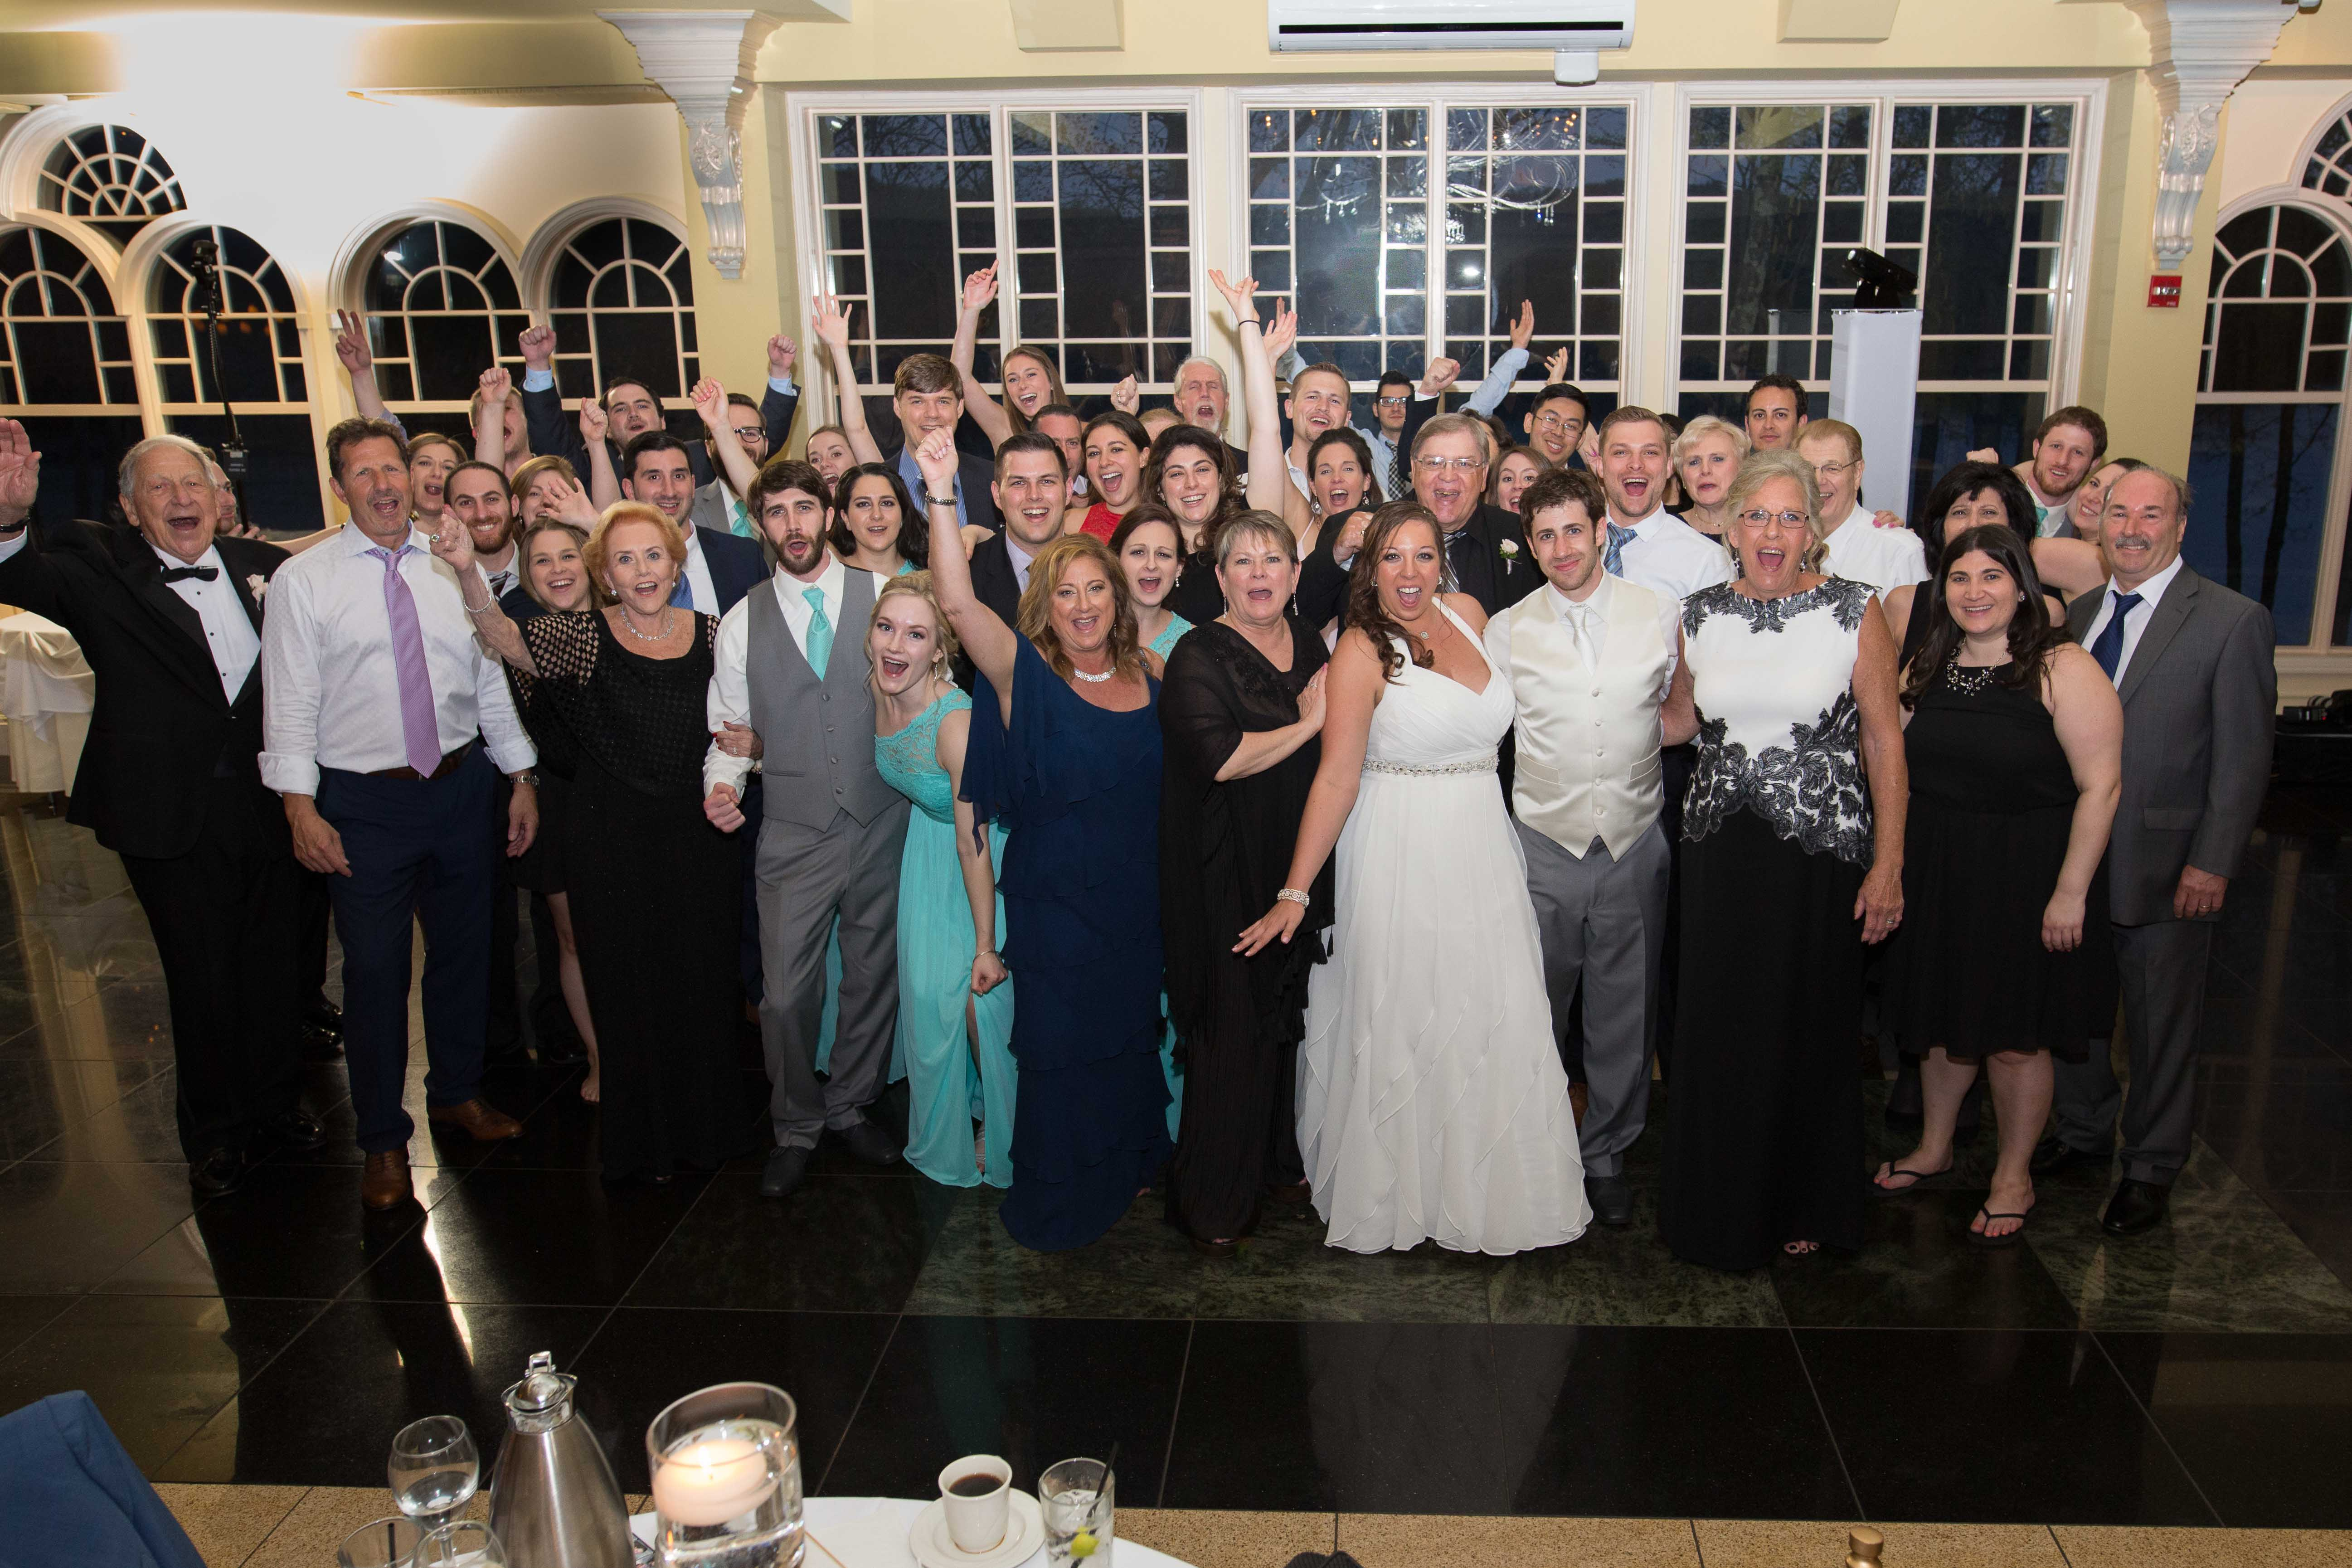 Wedding Reception at The Waterview Monroe CT - Wedding Photography by CT Photo Group